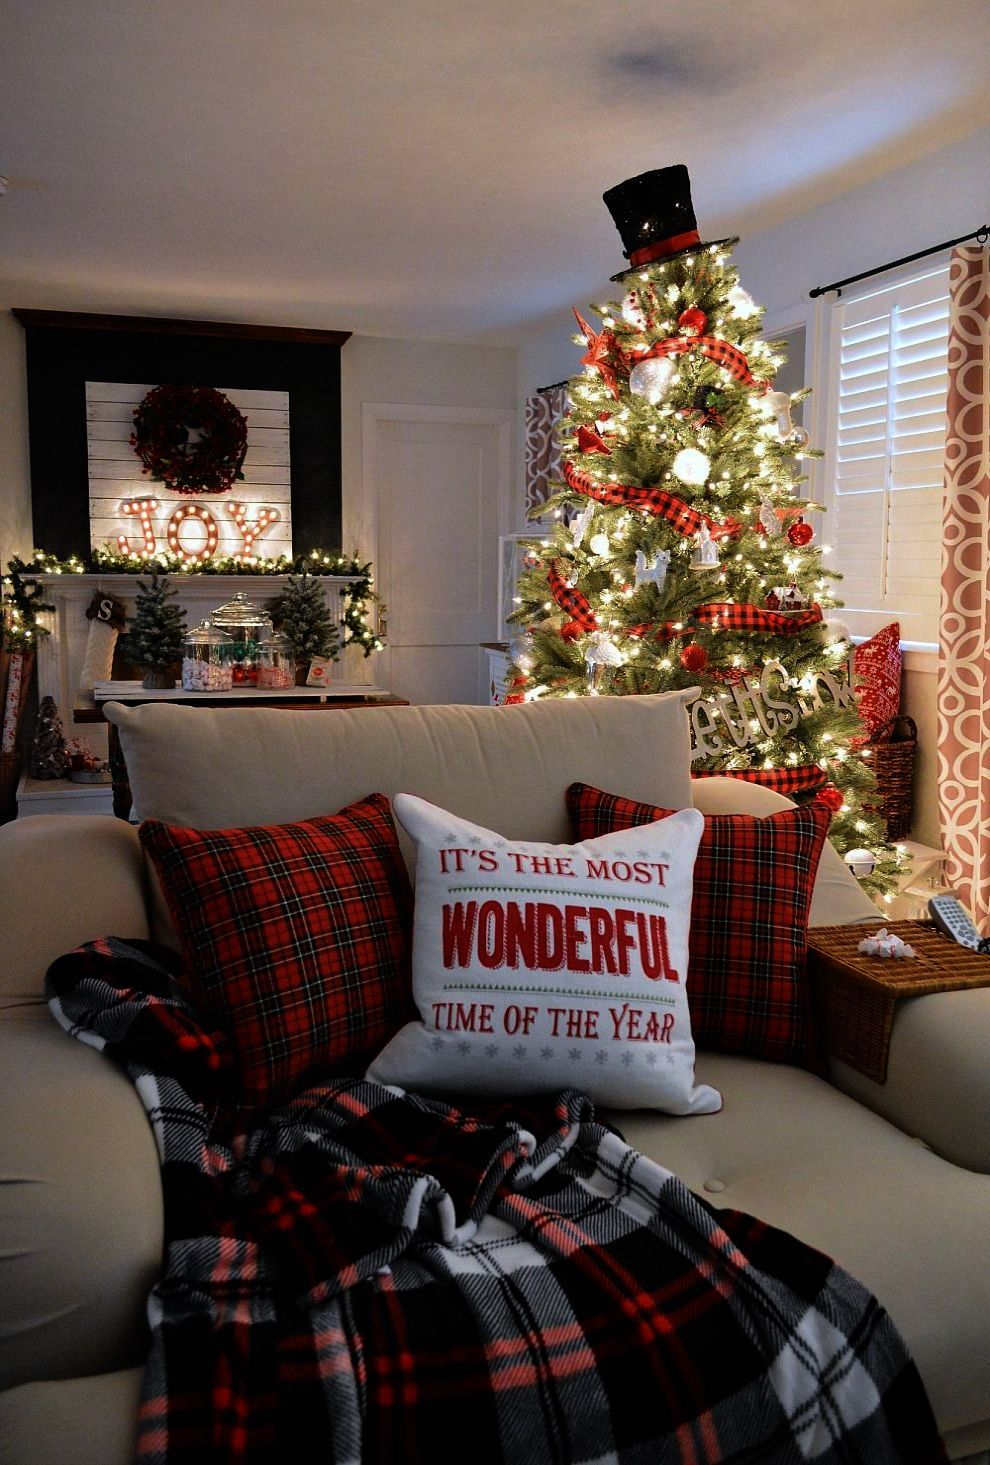 get some christmas decorations wholesale india collect